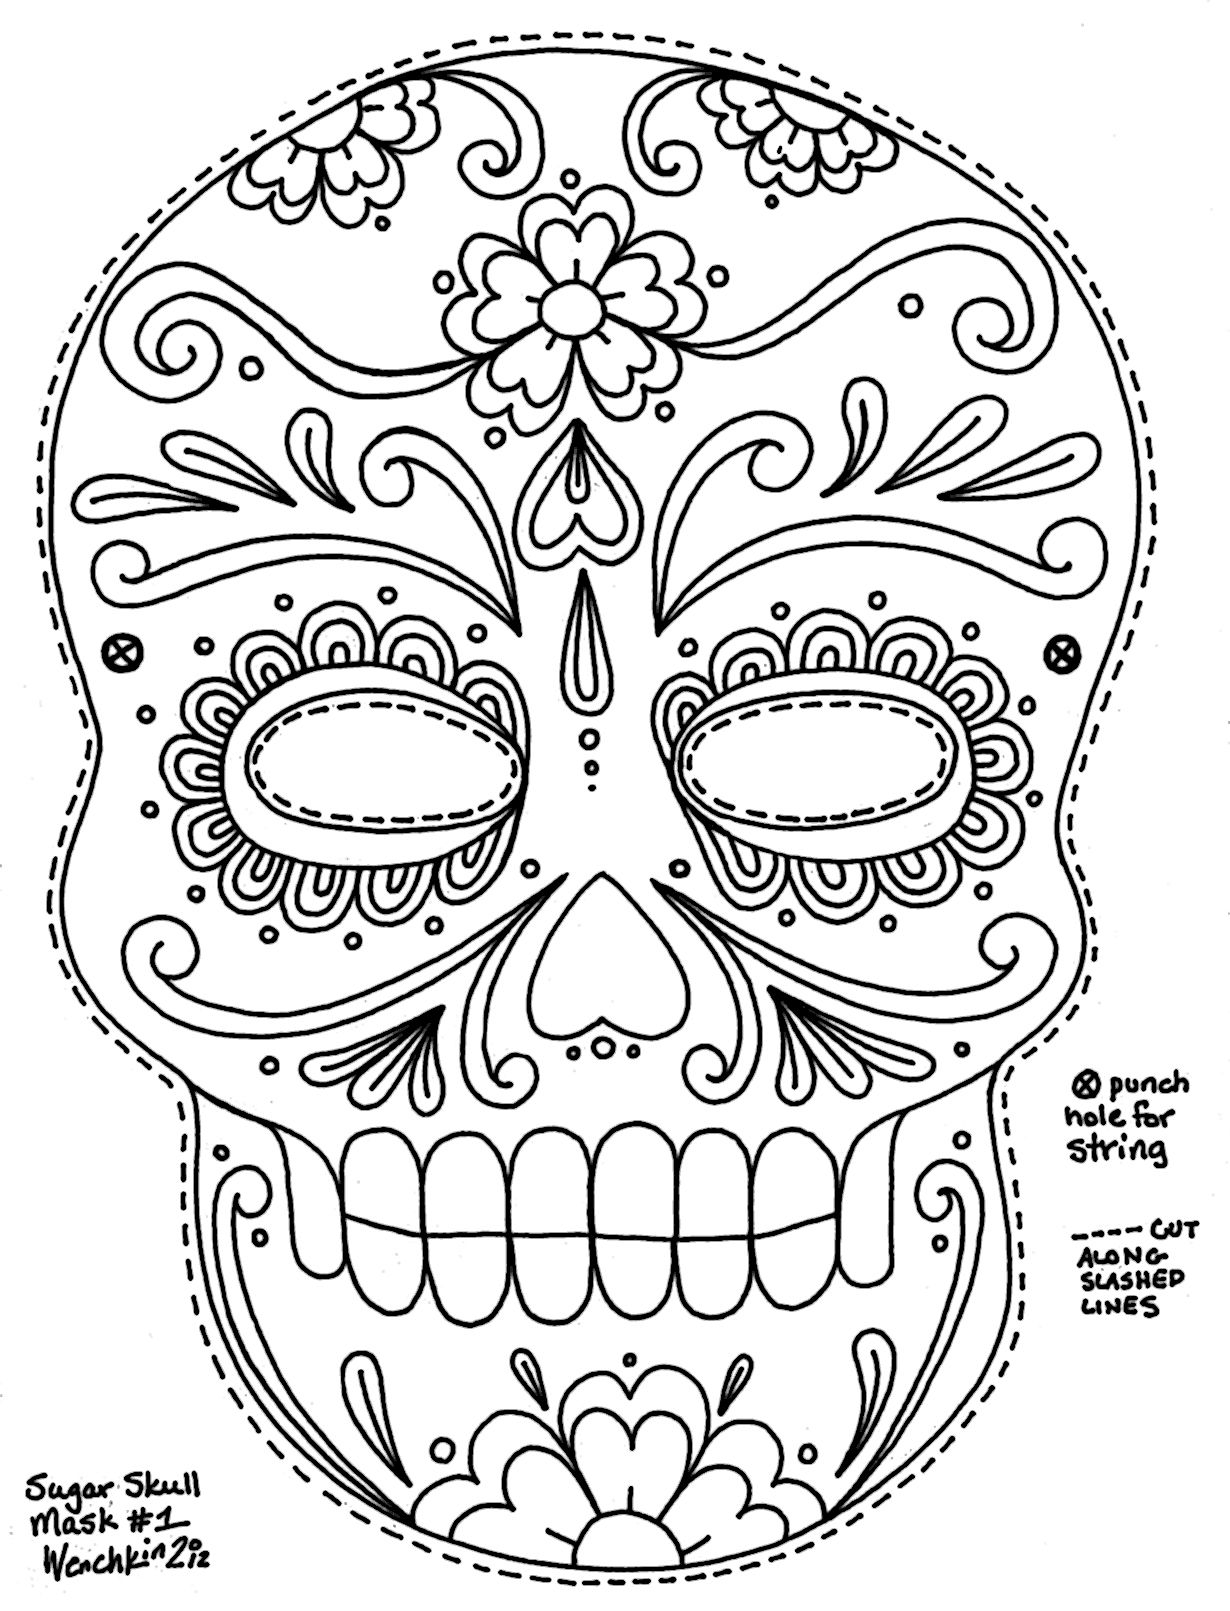 Sugar Skulls Coloring Pages Printable Pages Skull Coloring Pages Day Of The Dead Mask Coloring Pages